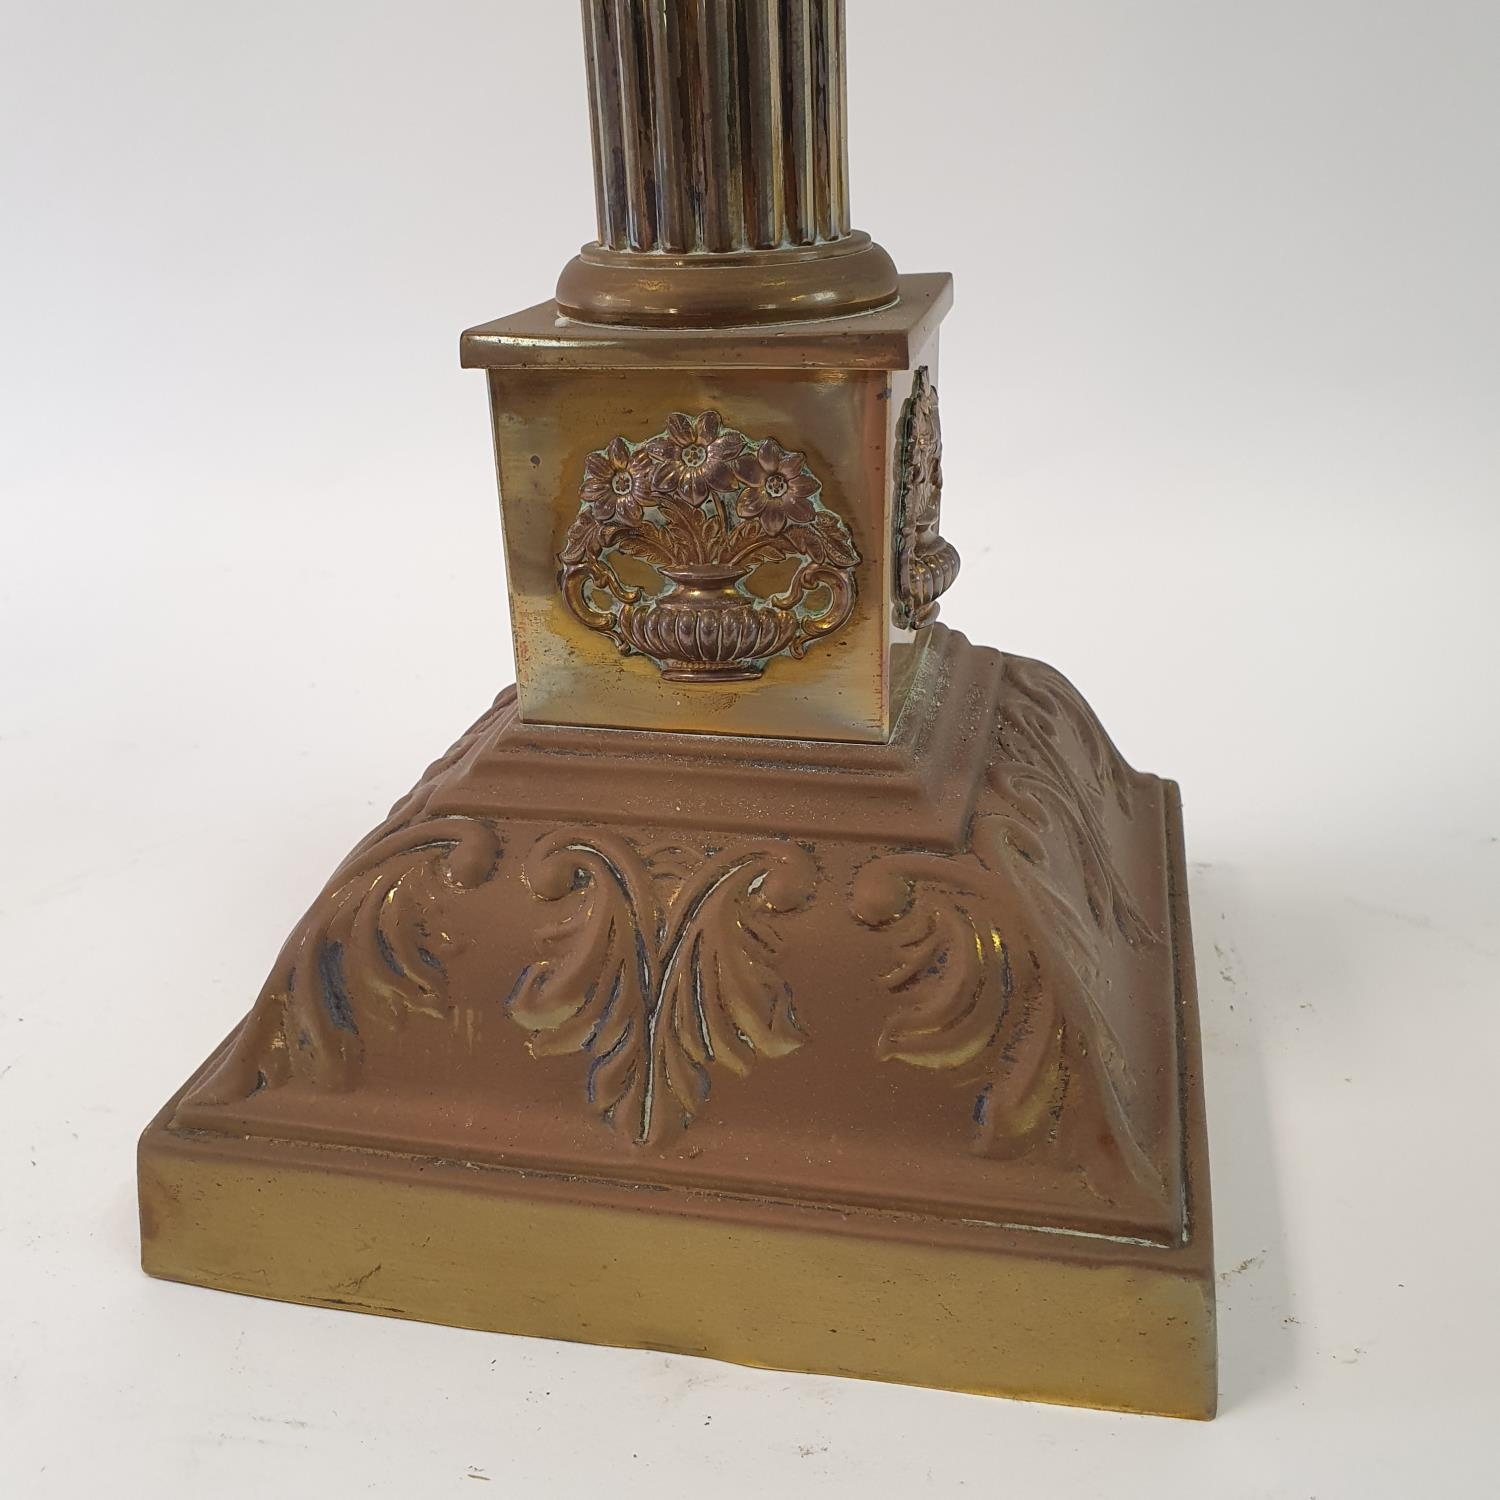 An oil lamp, with an acid etched glass shade, a clear glass well on a brass base in the form of a - Image 2 of 4